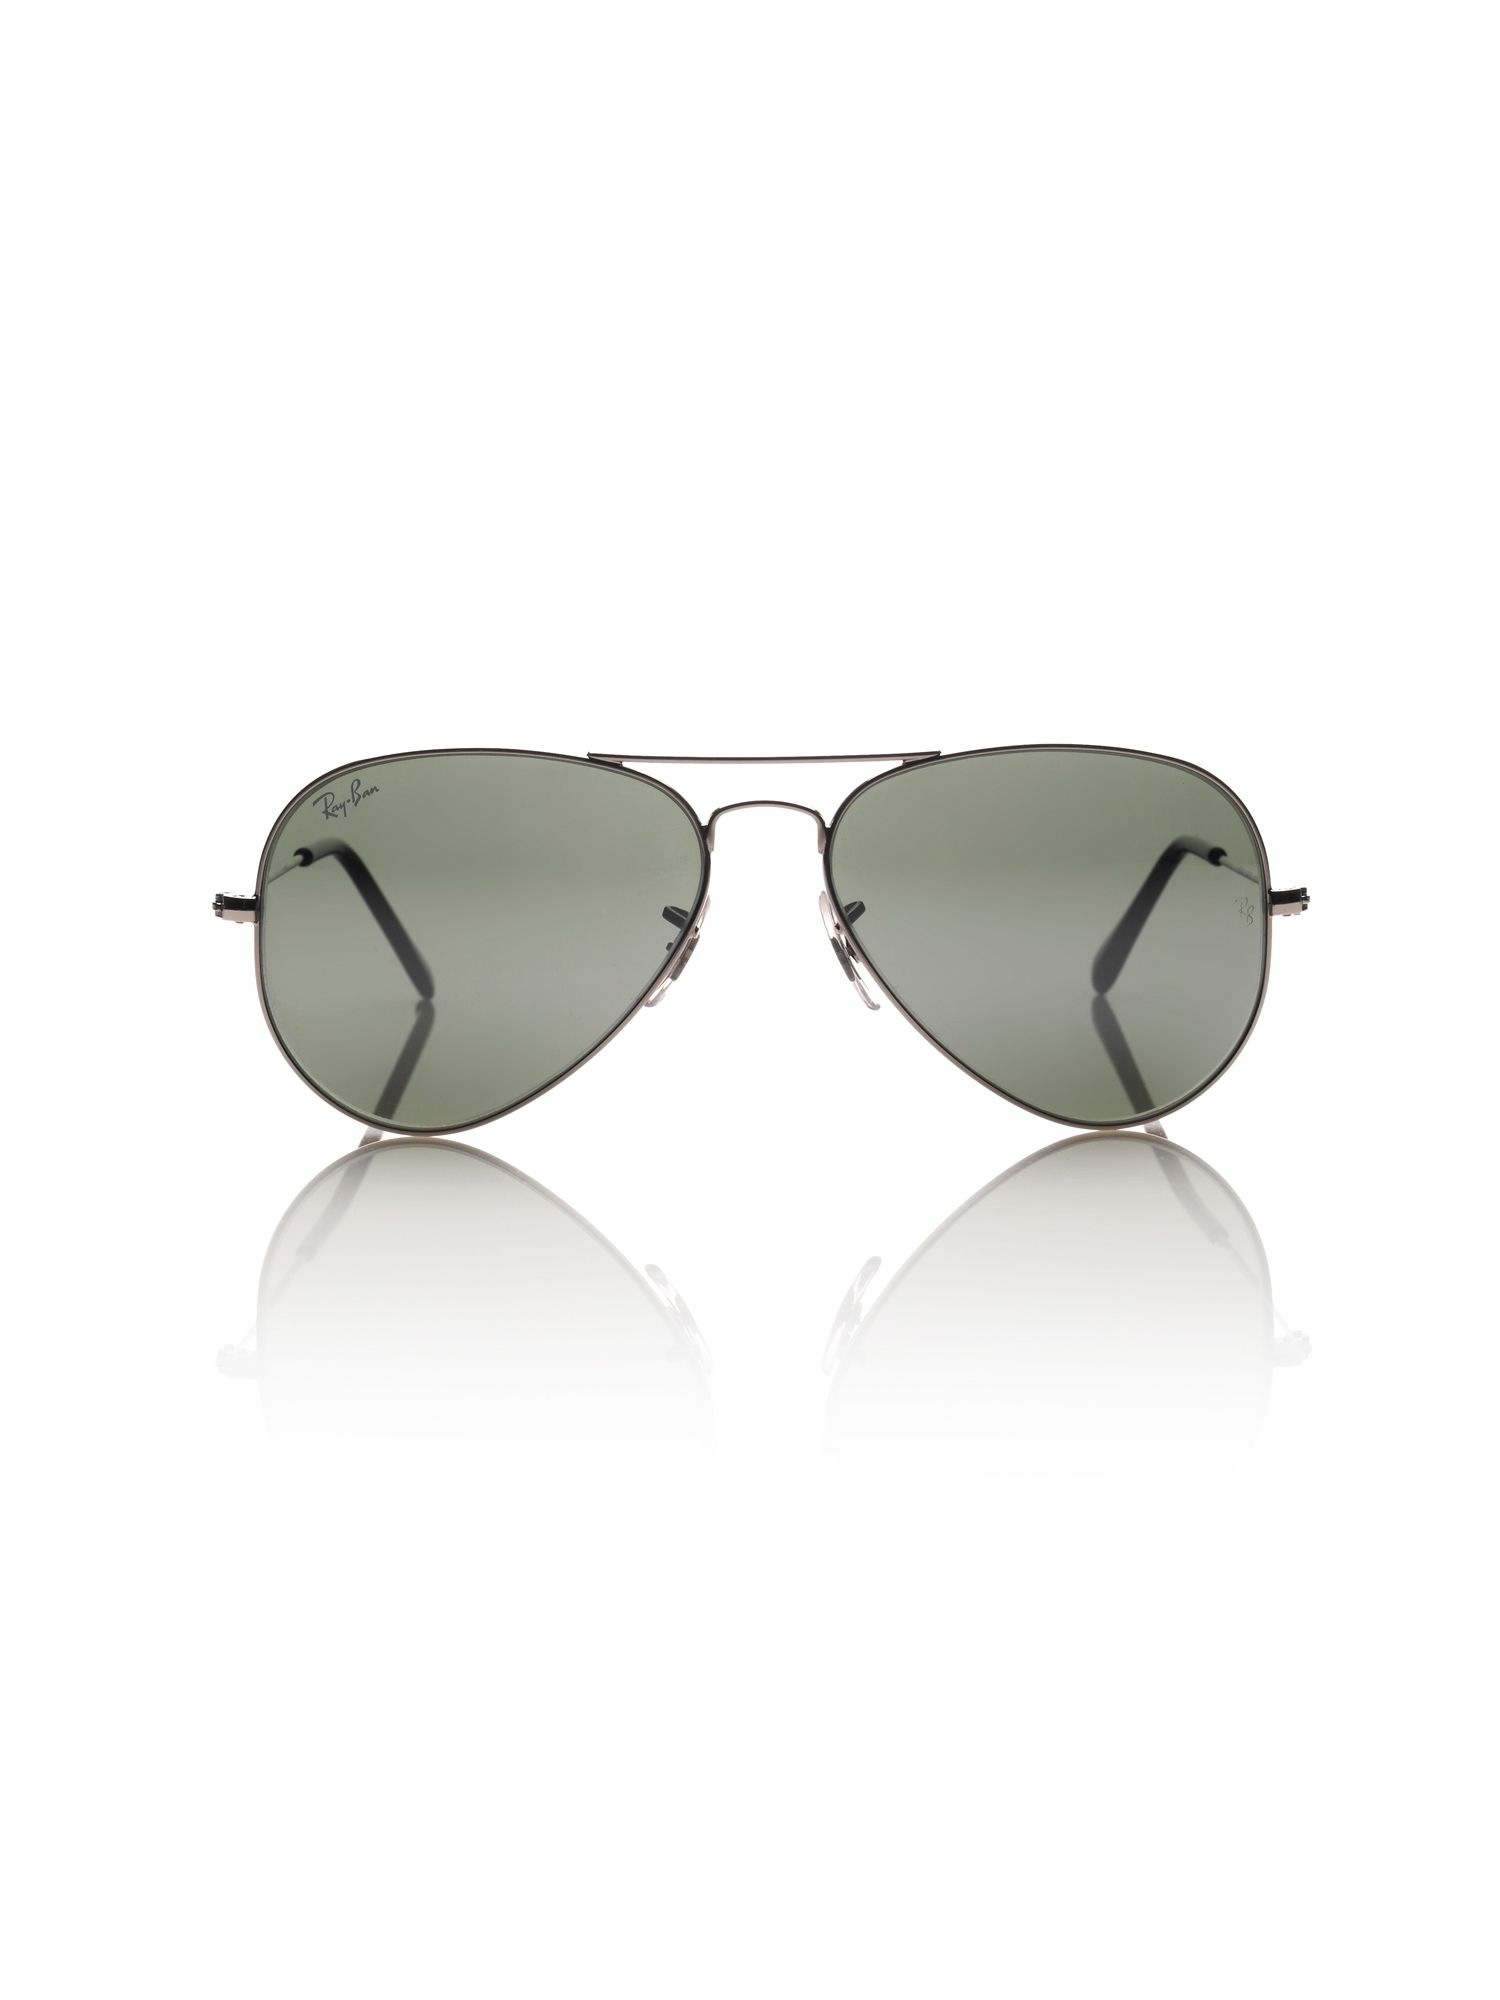 Unisex RB3025 Metal Aviator Sunglasses